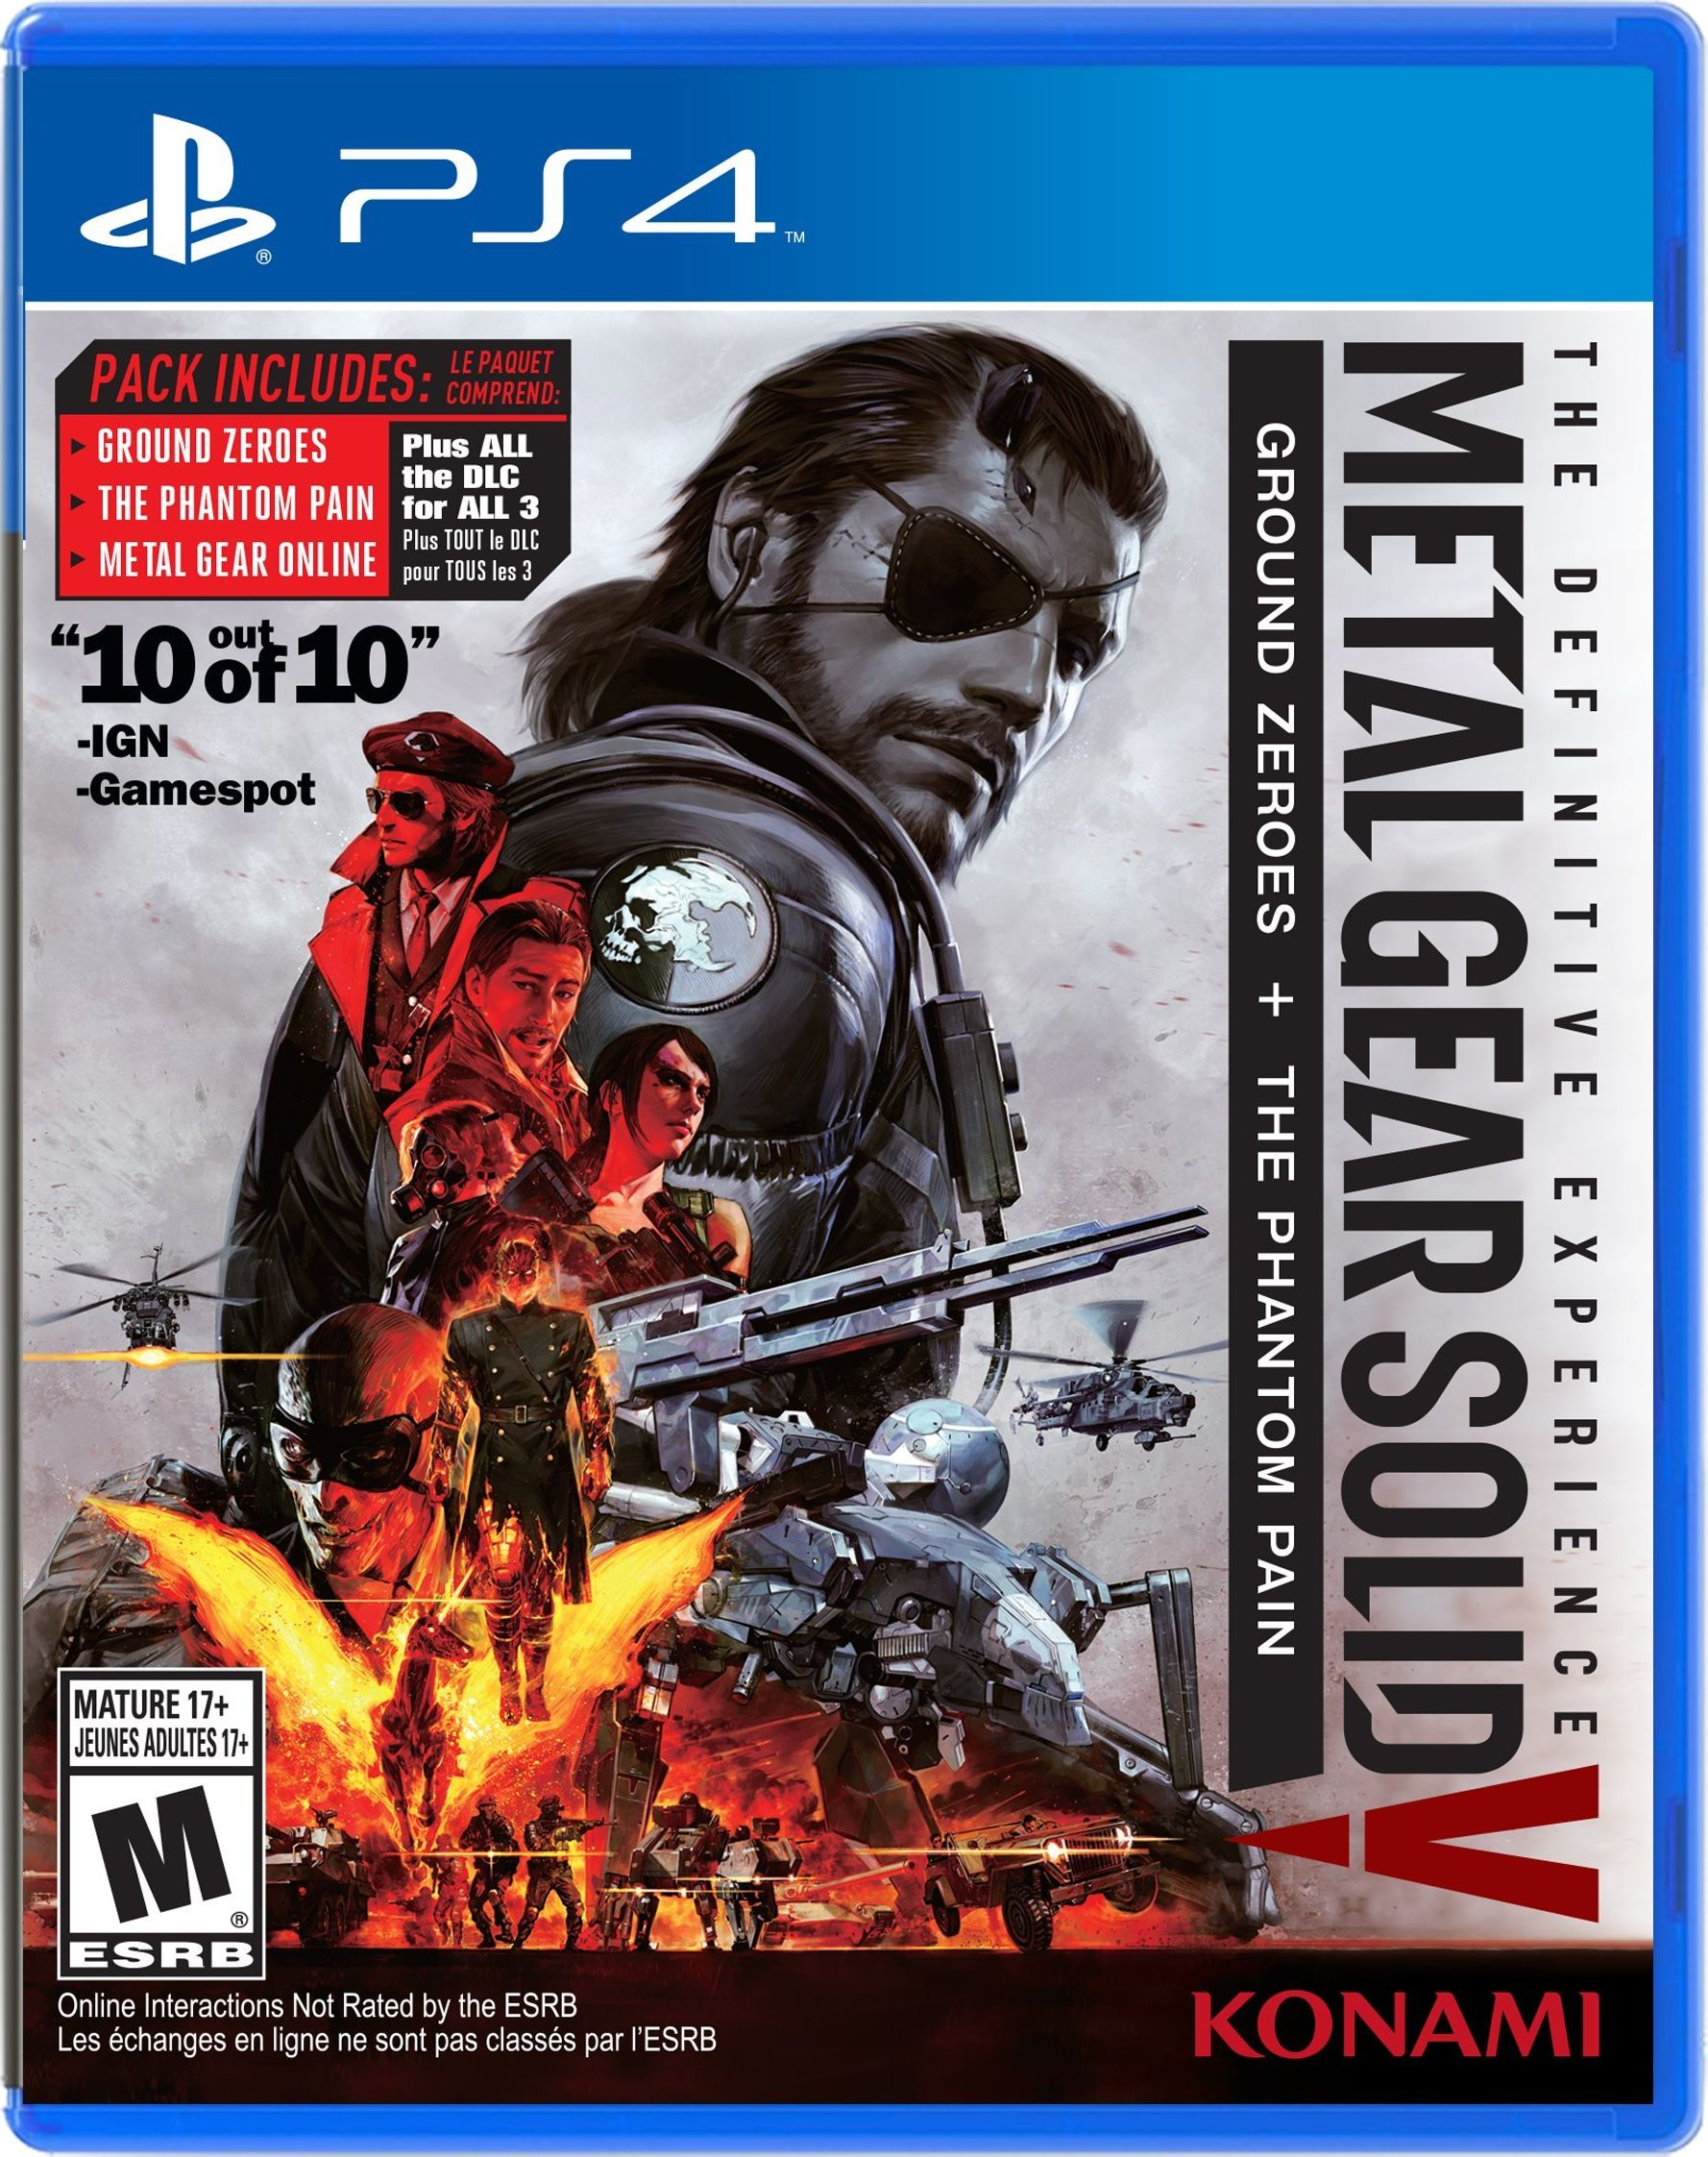 The Definitive Ranking Of Mary Kate And Ashley Olsen S: Metal Gear Solid V: The Definitive Experience Release Date